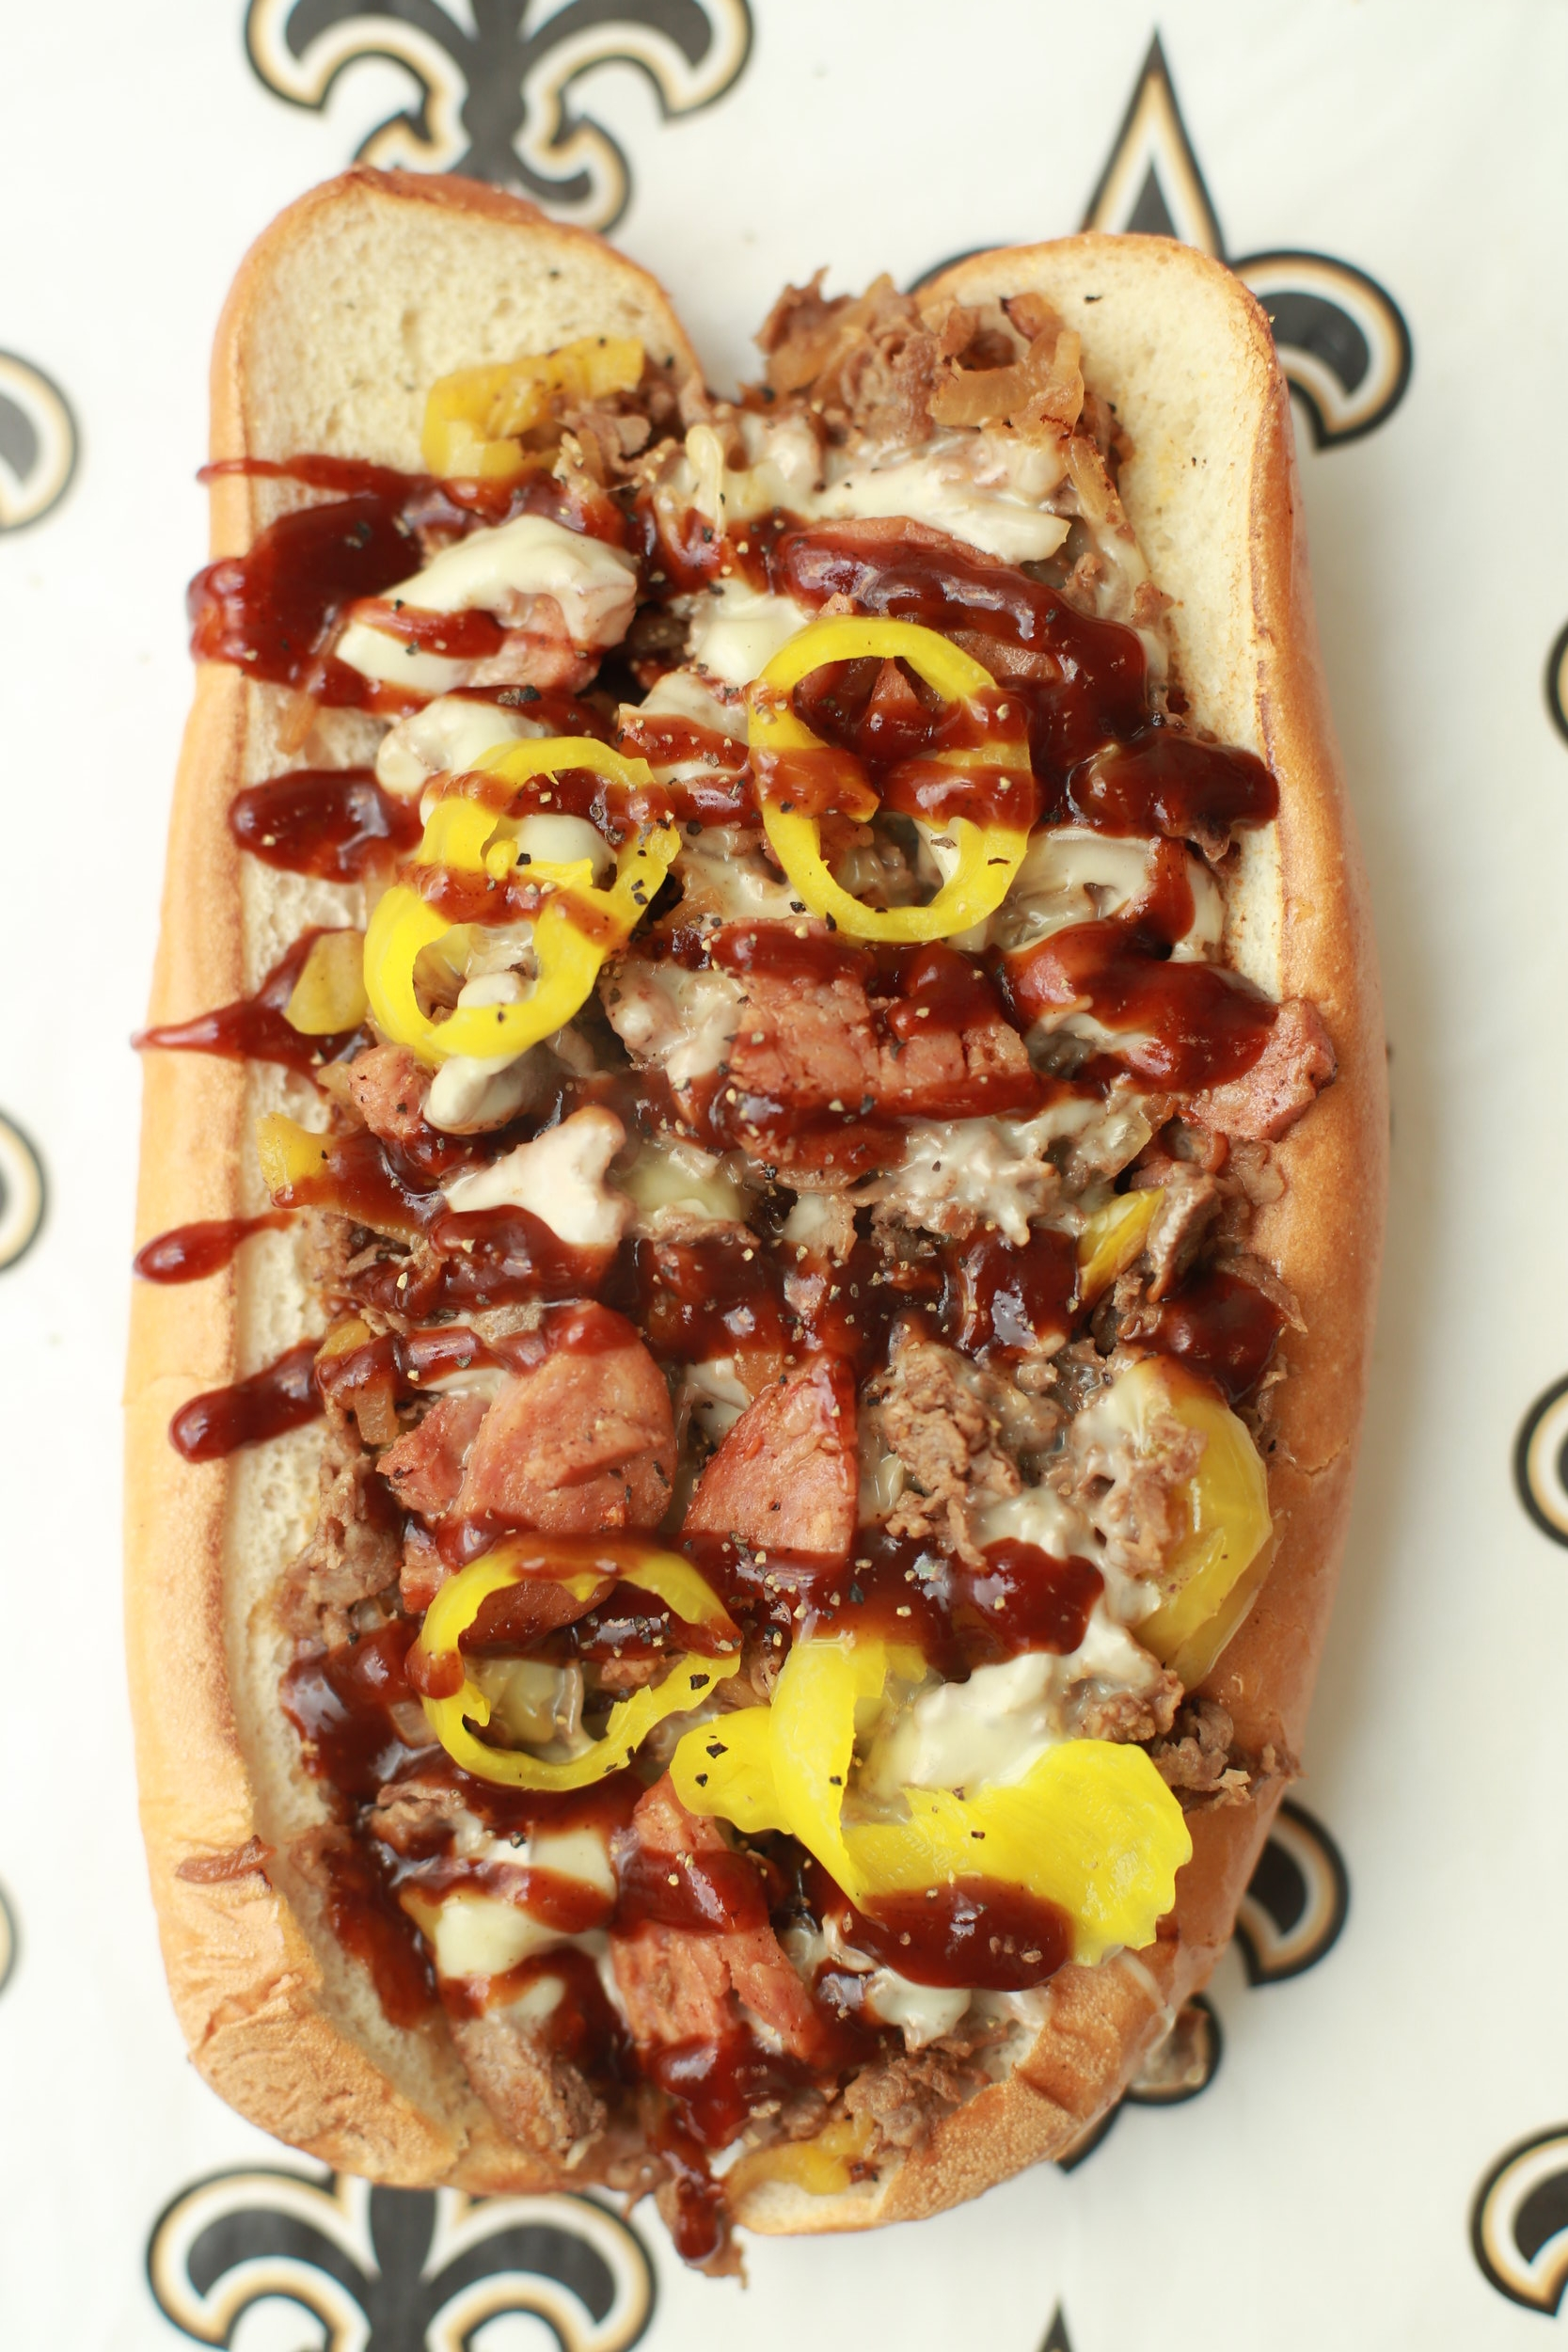 Easy Breesy - Grilled steak, sausage, grilled onions, banana peppers, white American cheese, and topped with BBQ sauceSM. $6.75 / REG. $8.75